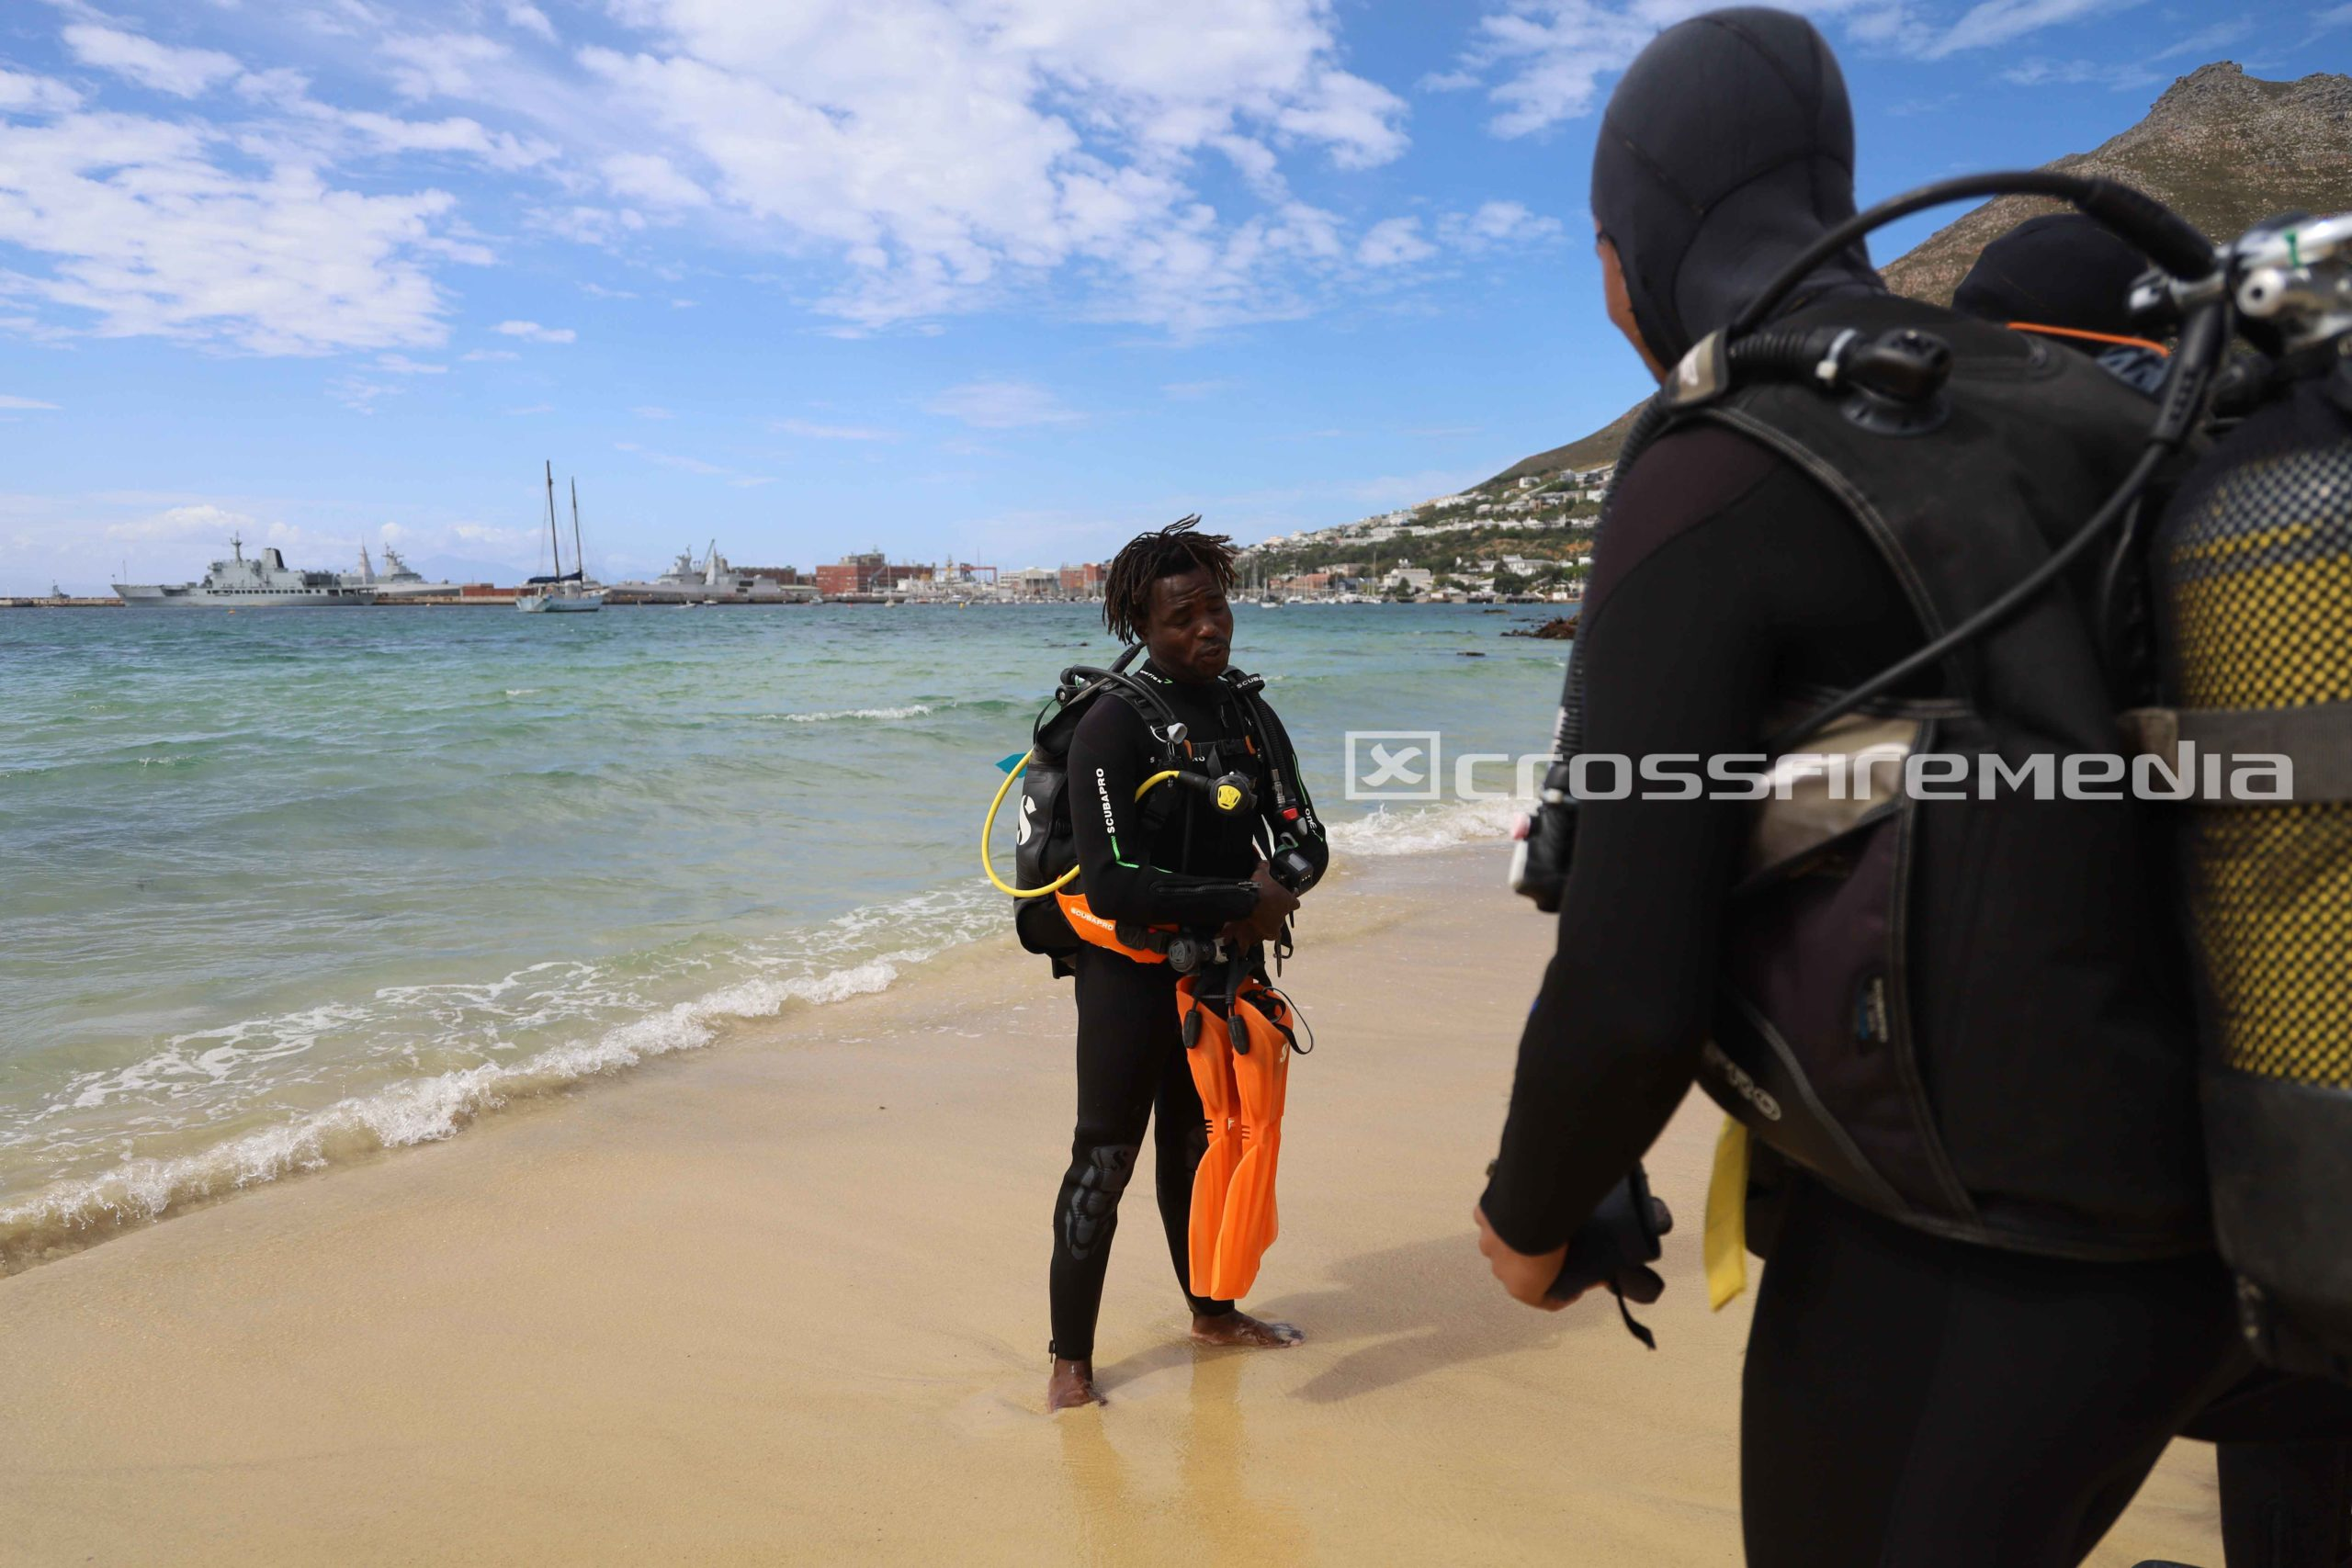 product feature images of scuba divers in scuba gear